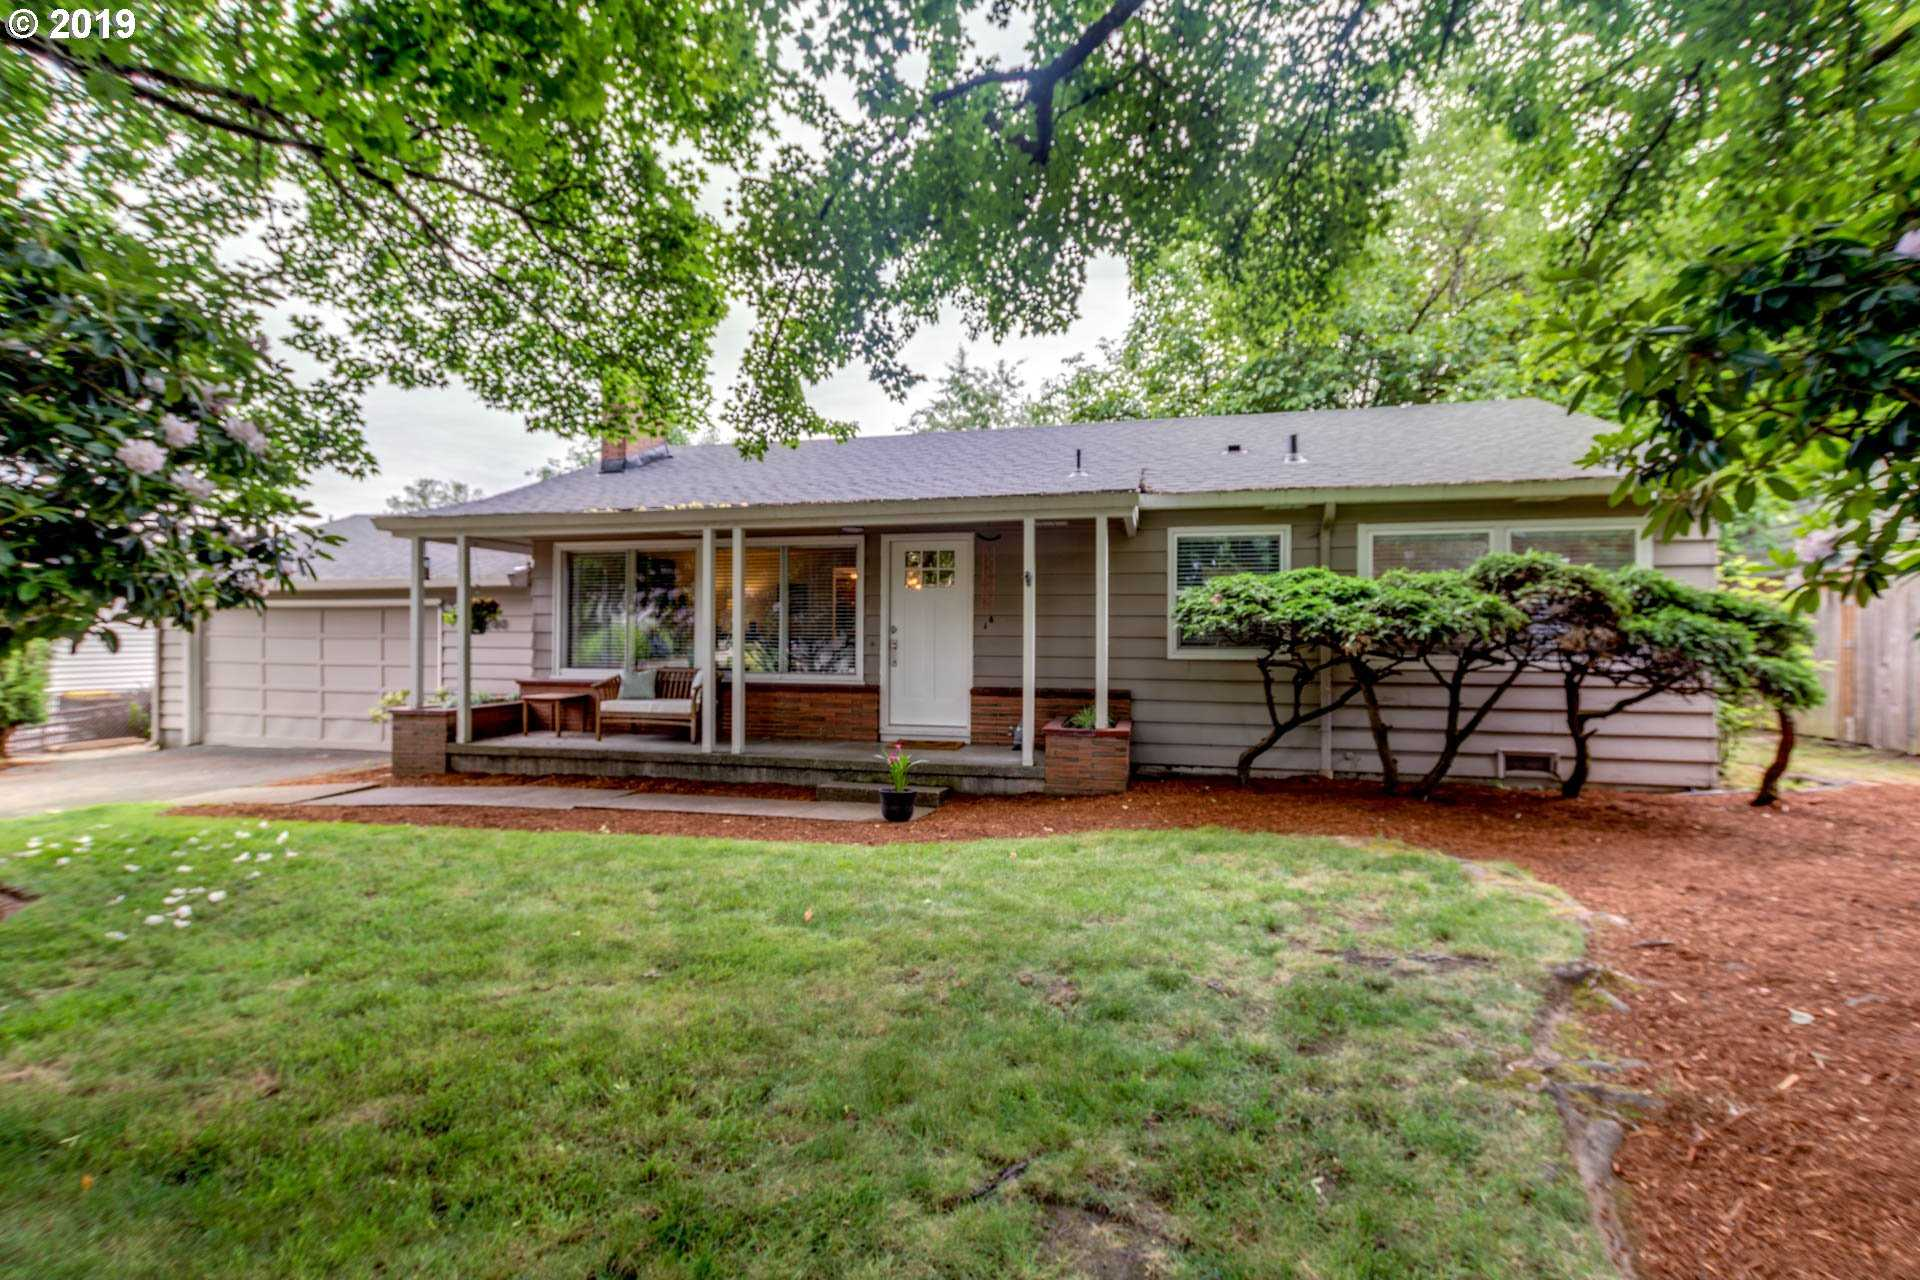 $395,000   3Br/1Ba   For Sale In Garden Home/raleigh Hills, Portland ...